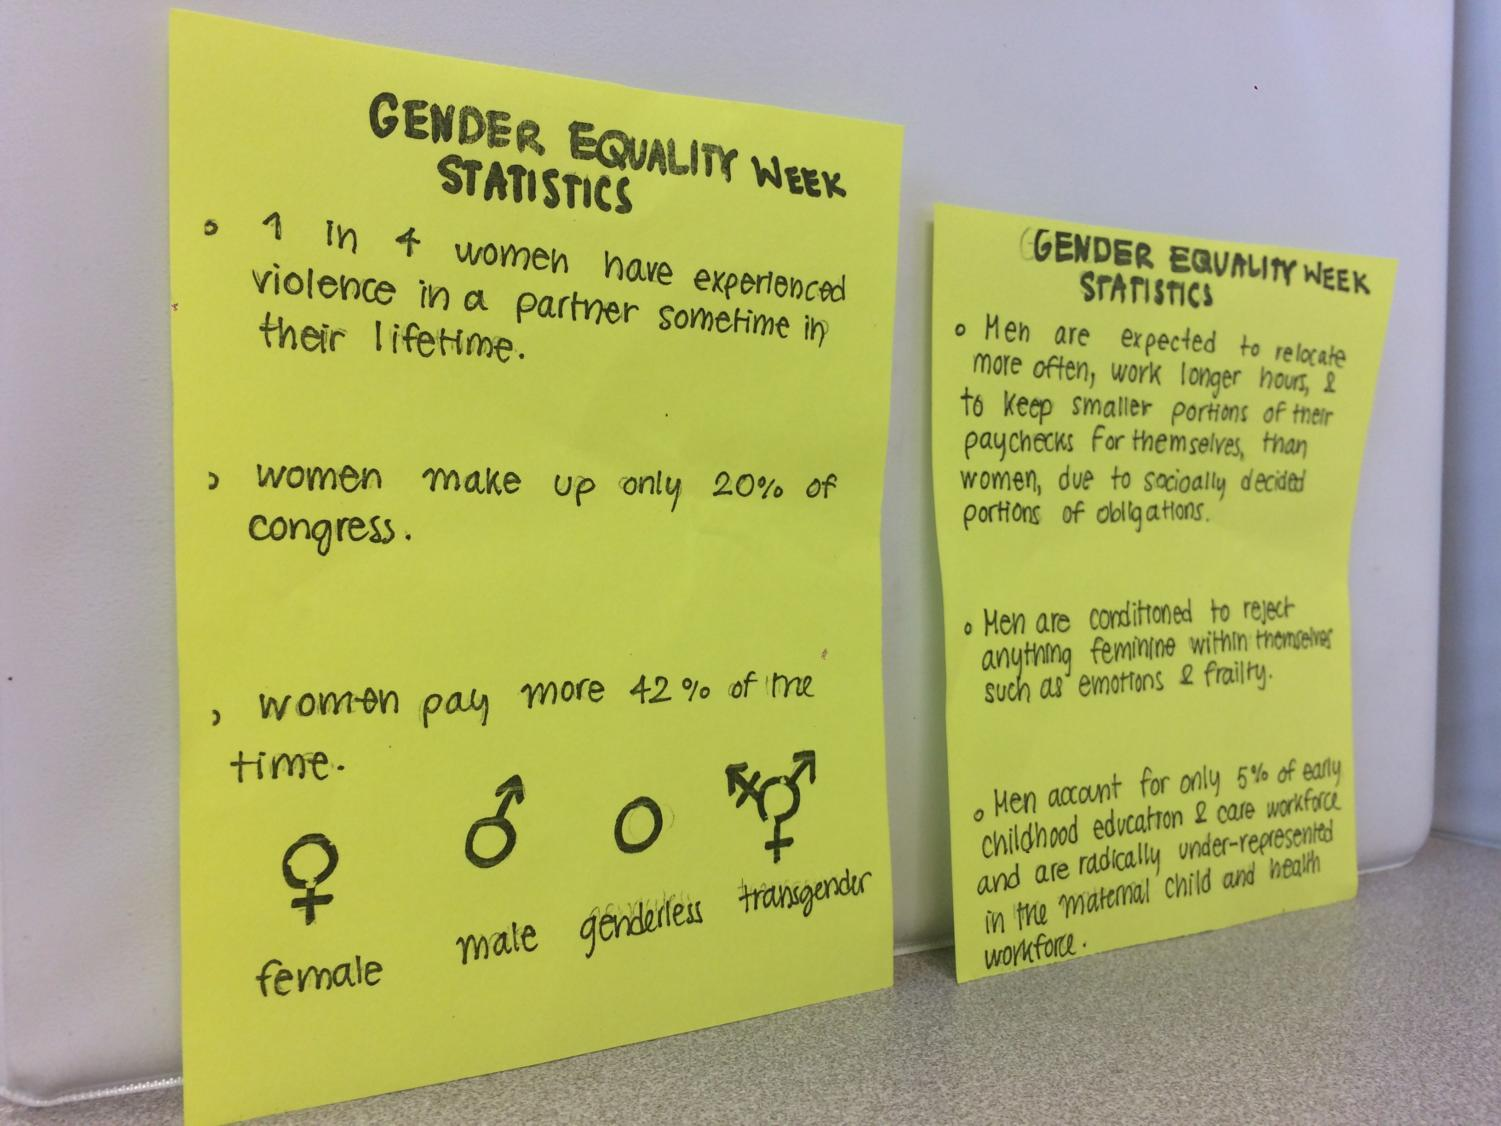 ASB+made+imformational+pamphlets+about++statistics+for+gender+equality.